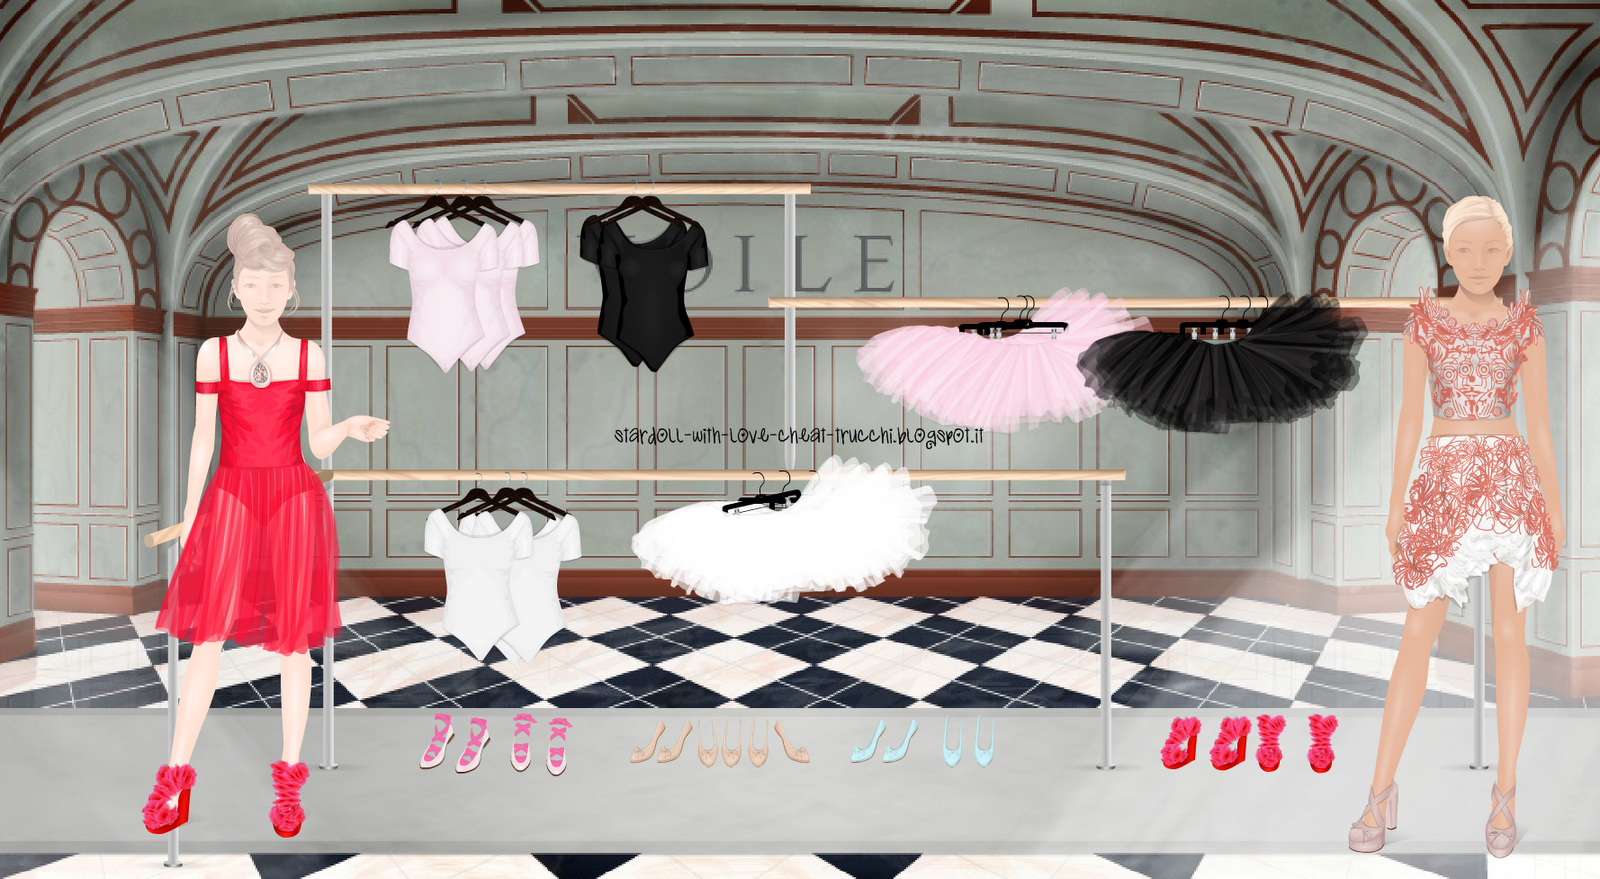 Stardoll with love trucchi cheat gratis other voile e i for Nuovi piani coloniali in inghilterra